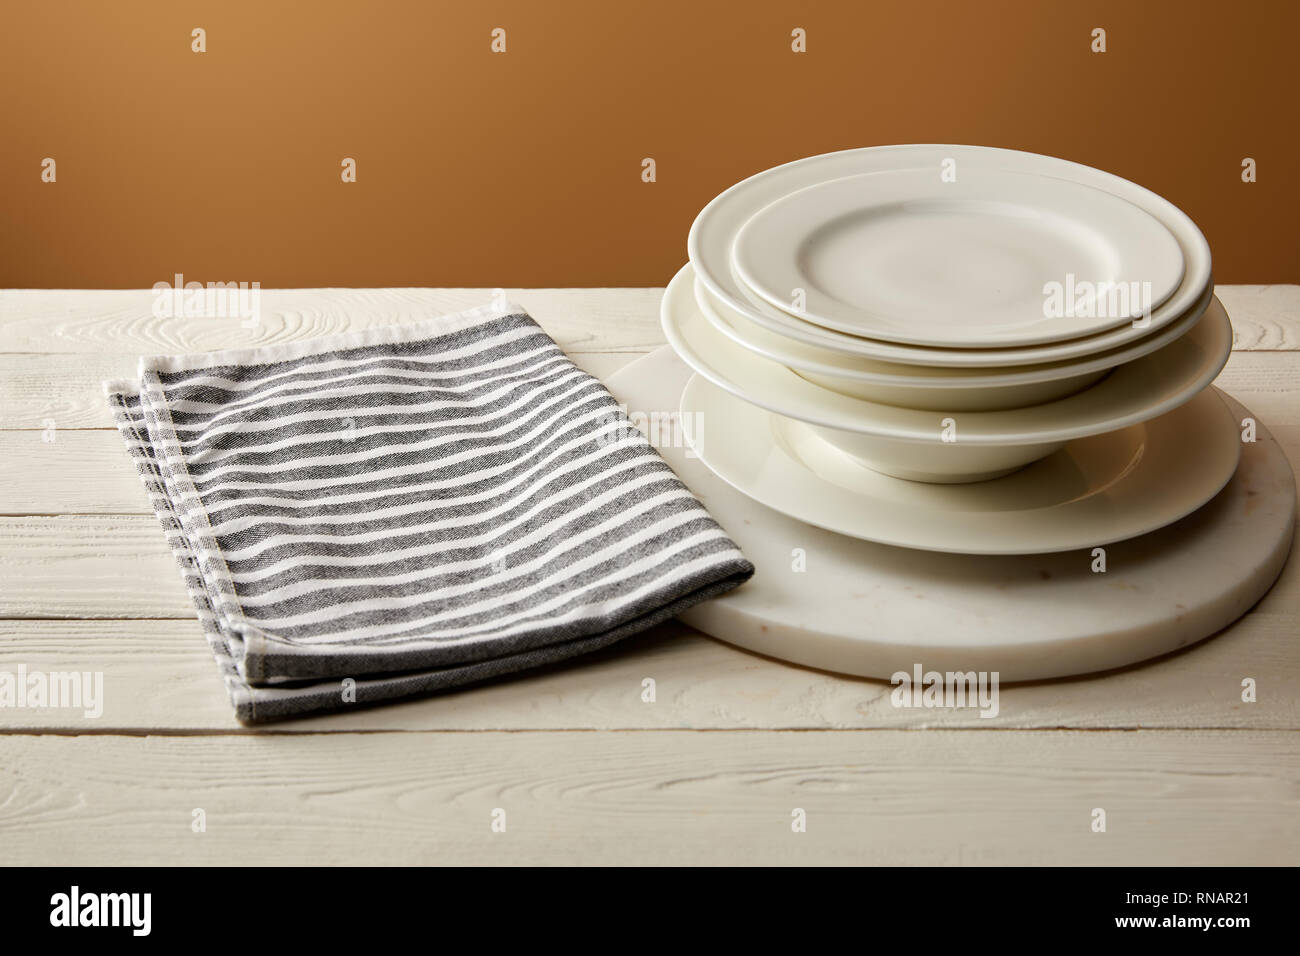 stack of white plates and striped cotton towel on white wooden surface - Stock Image